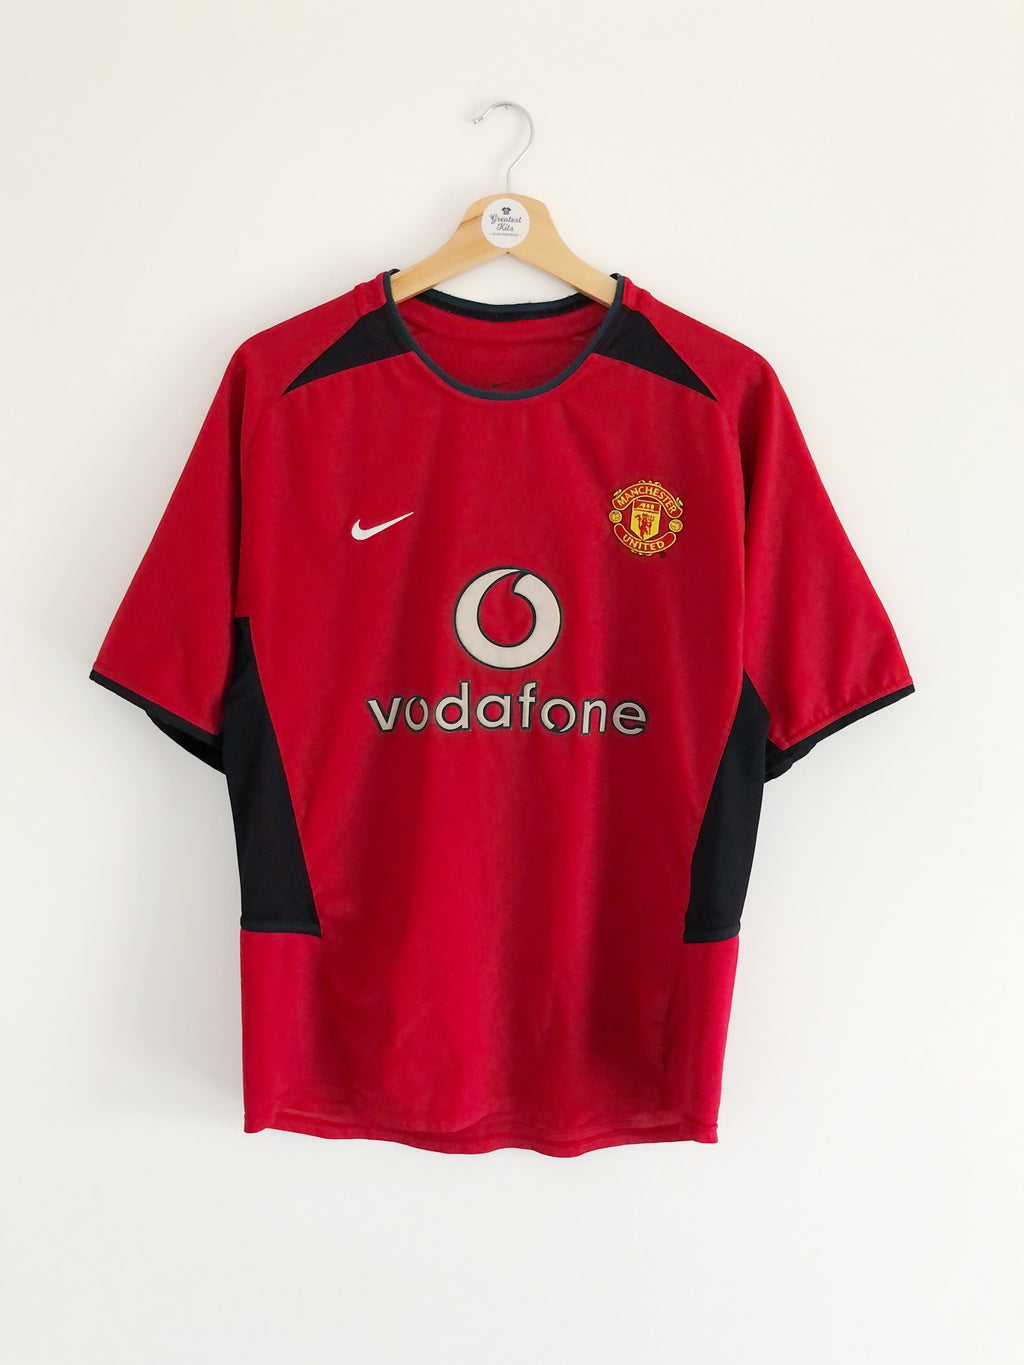 2002/04 Manchester United Home Shirt (S) 7.5/10